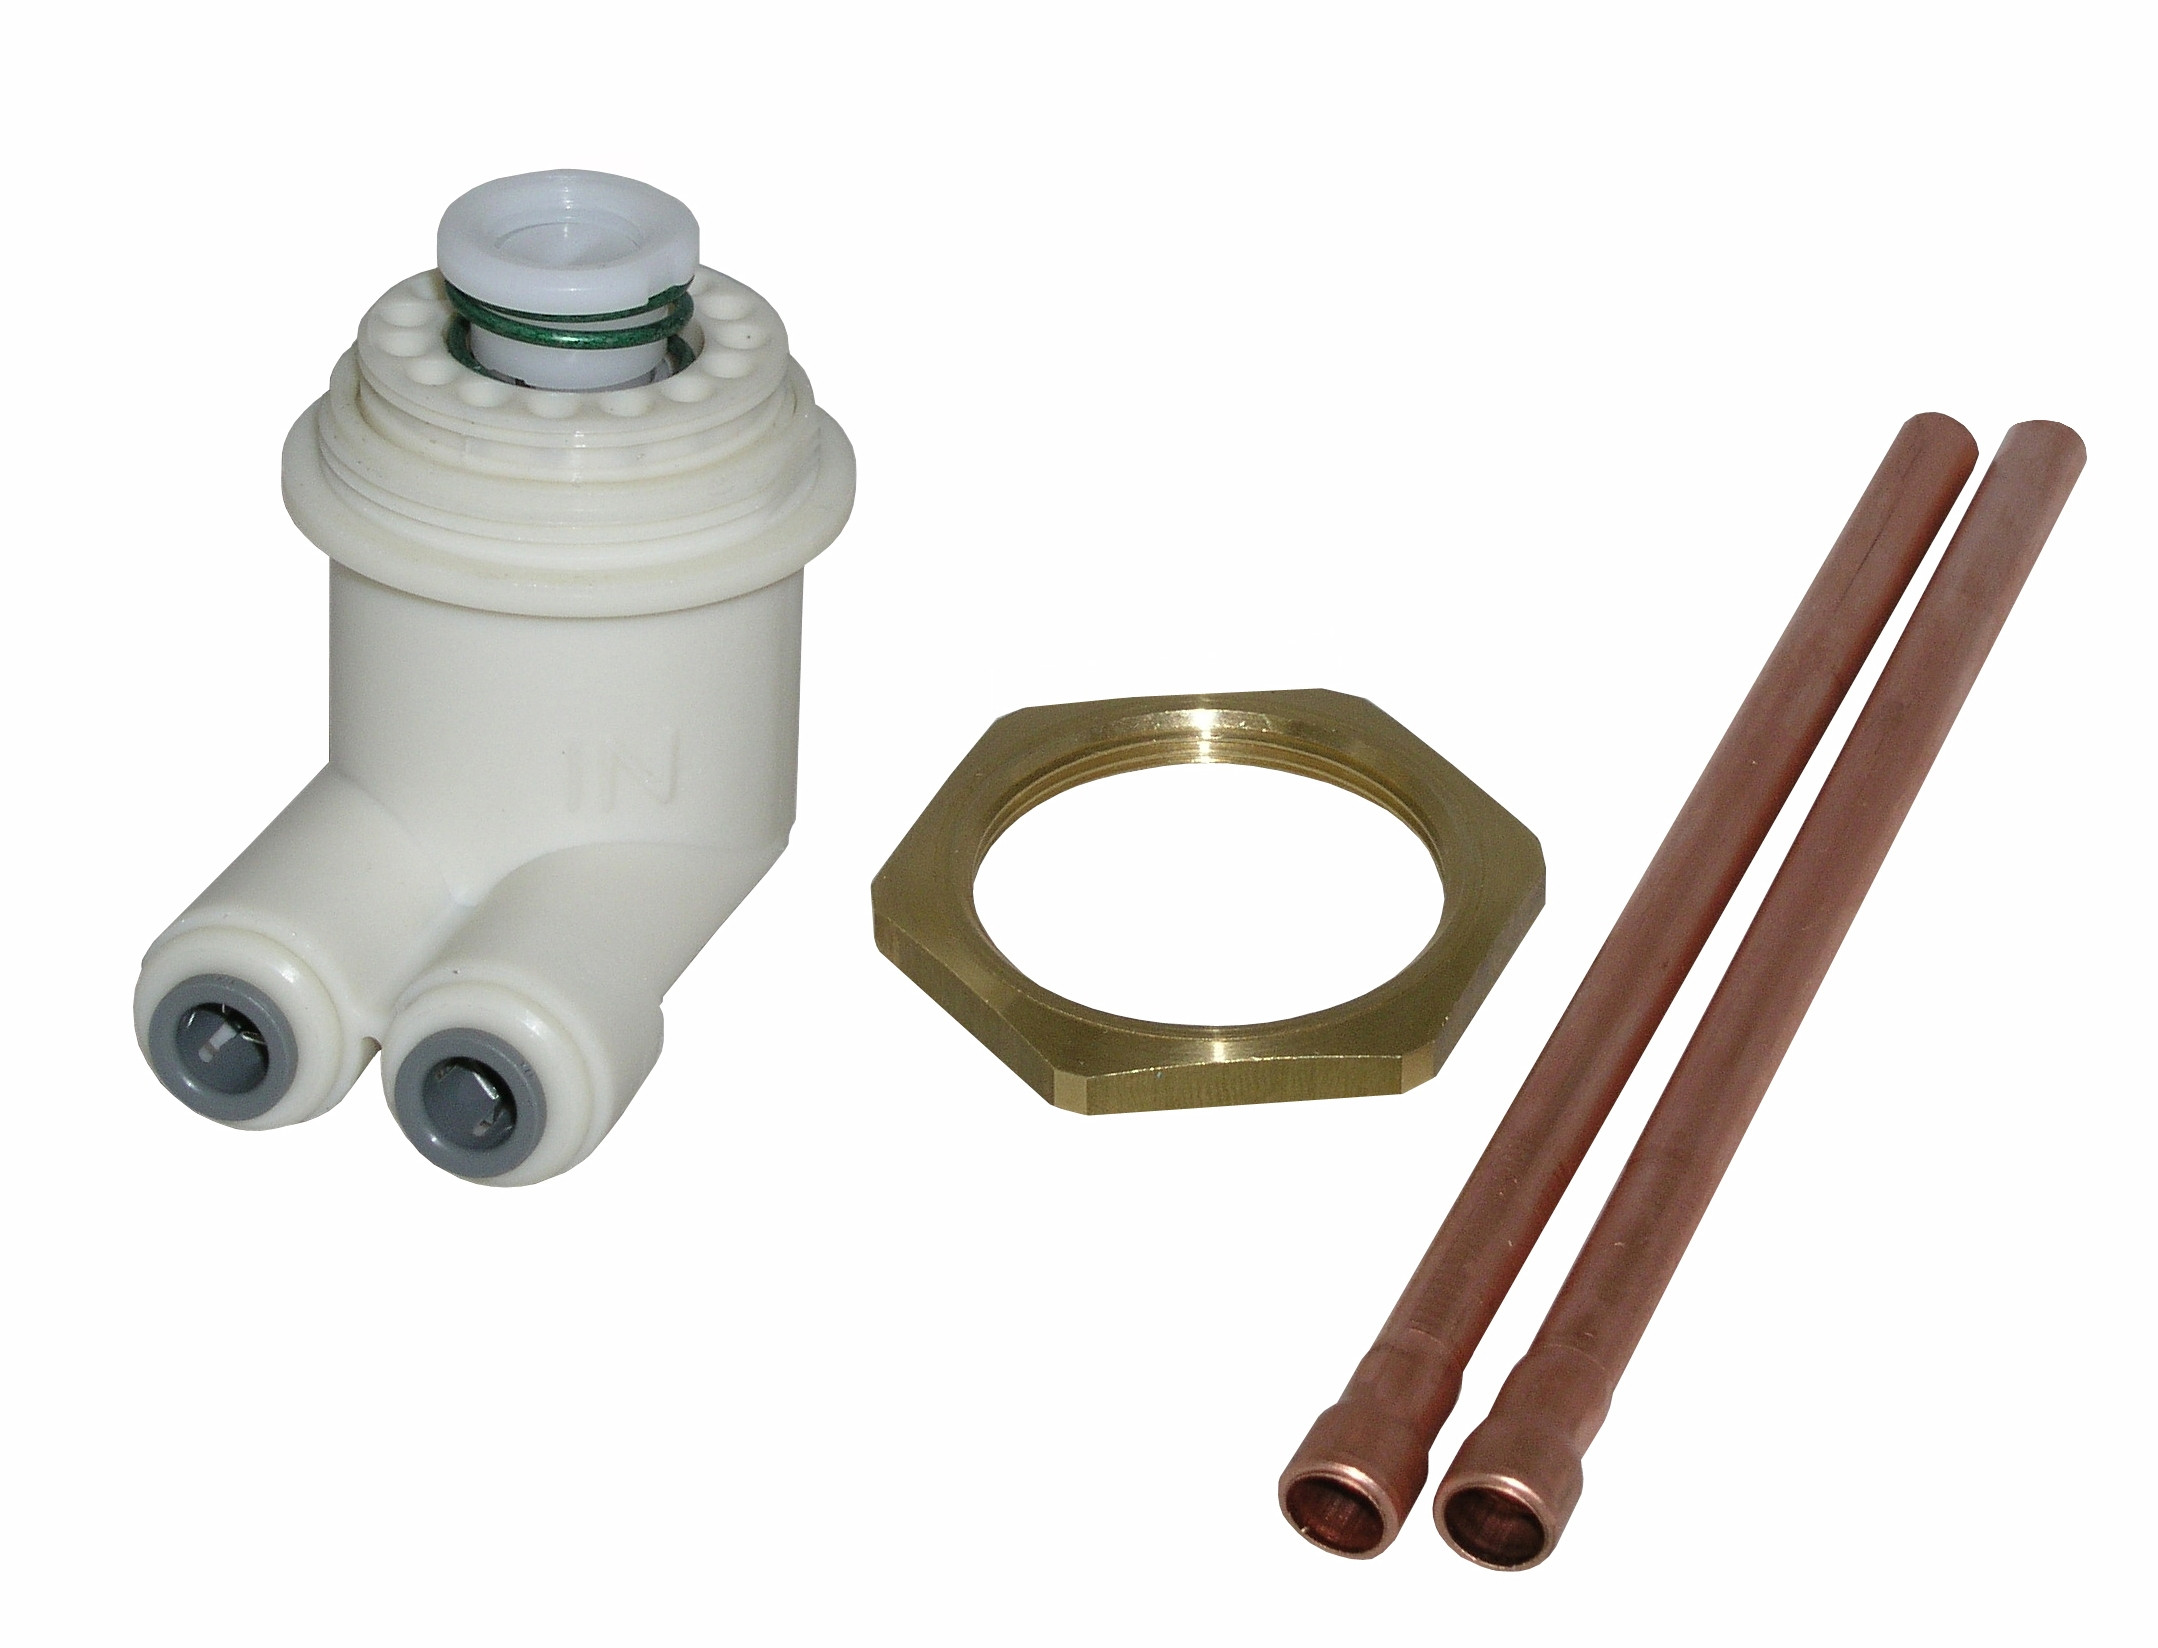 Elkay 98531c Drinking Fountain Valve And Regulator Kit